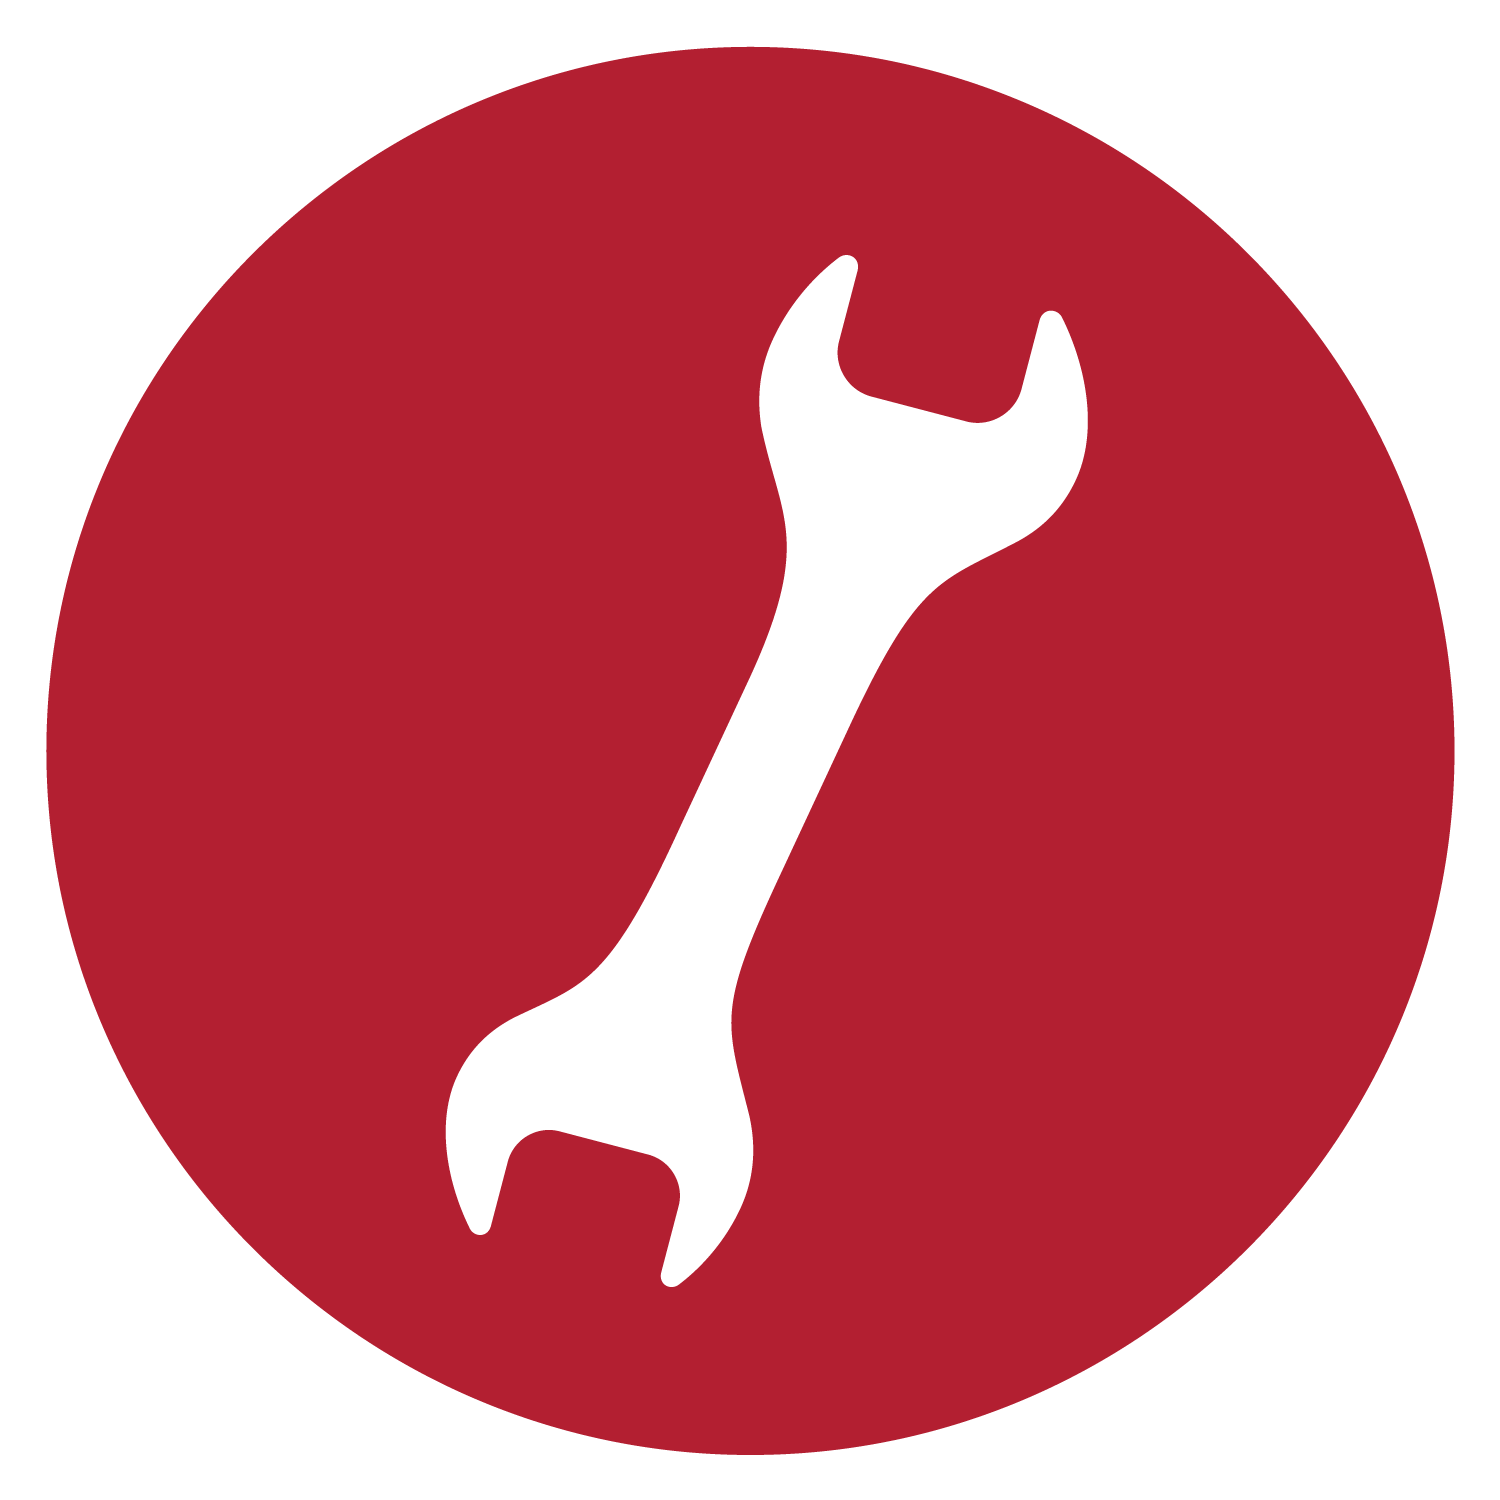 Wrench icons png vector. Screwdriver clipart red